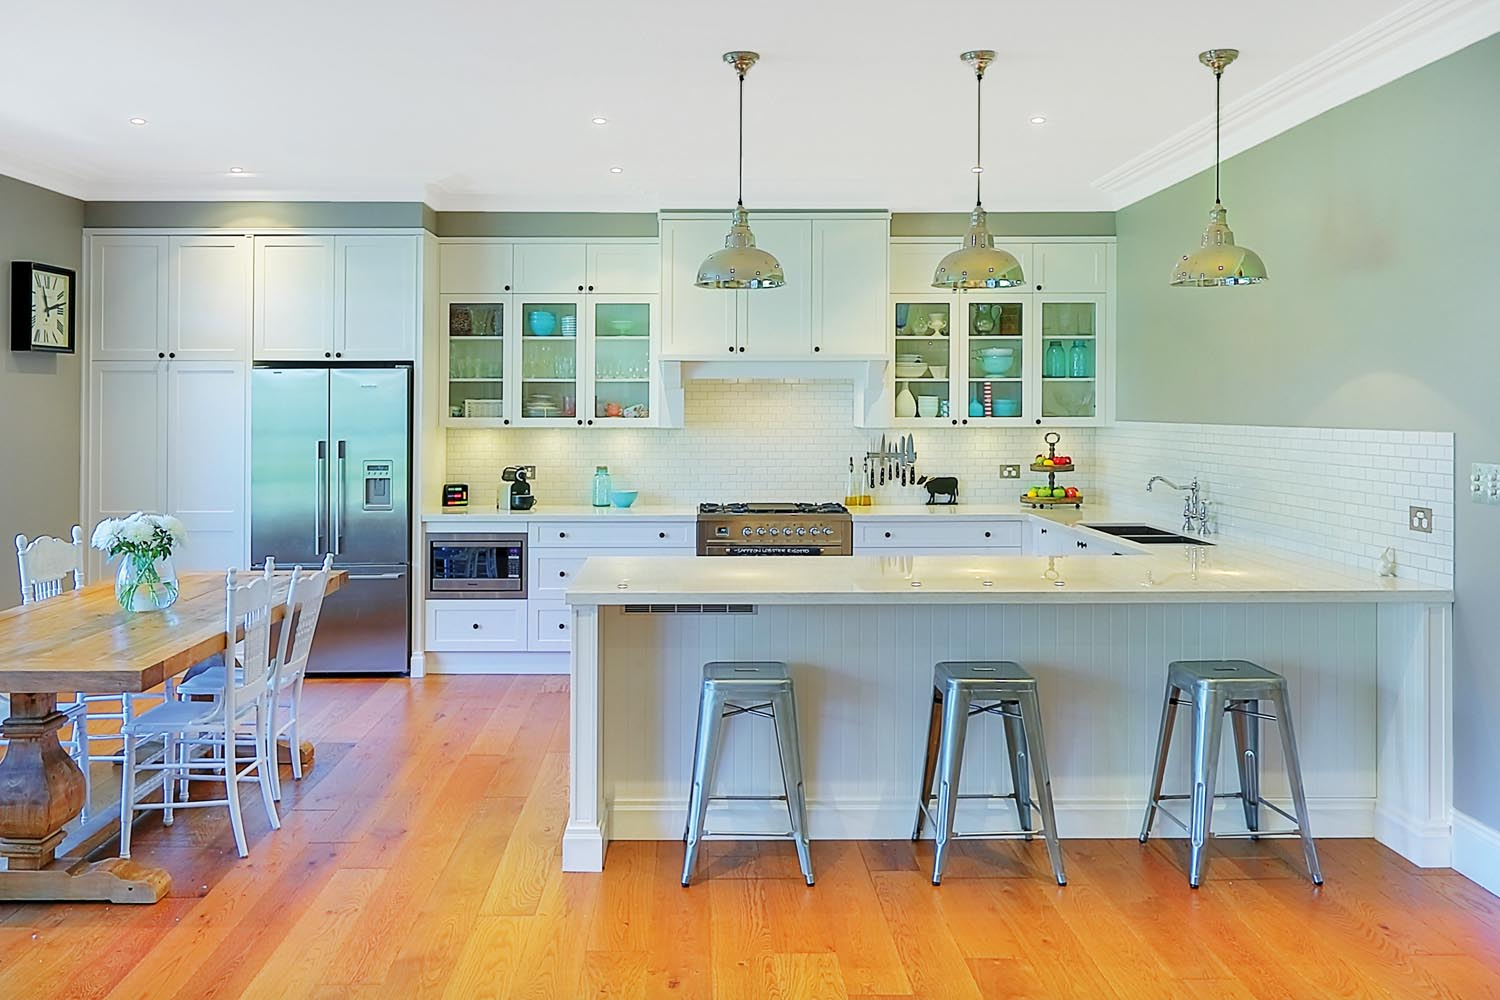 Relaxed living: Contemporary white kitchen - Completehome